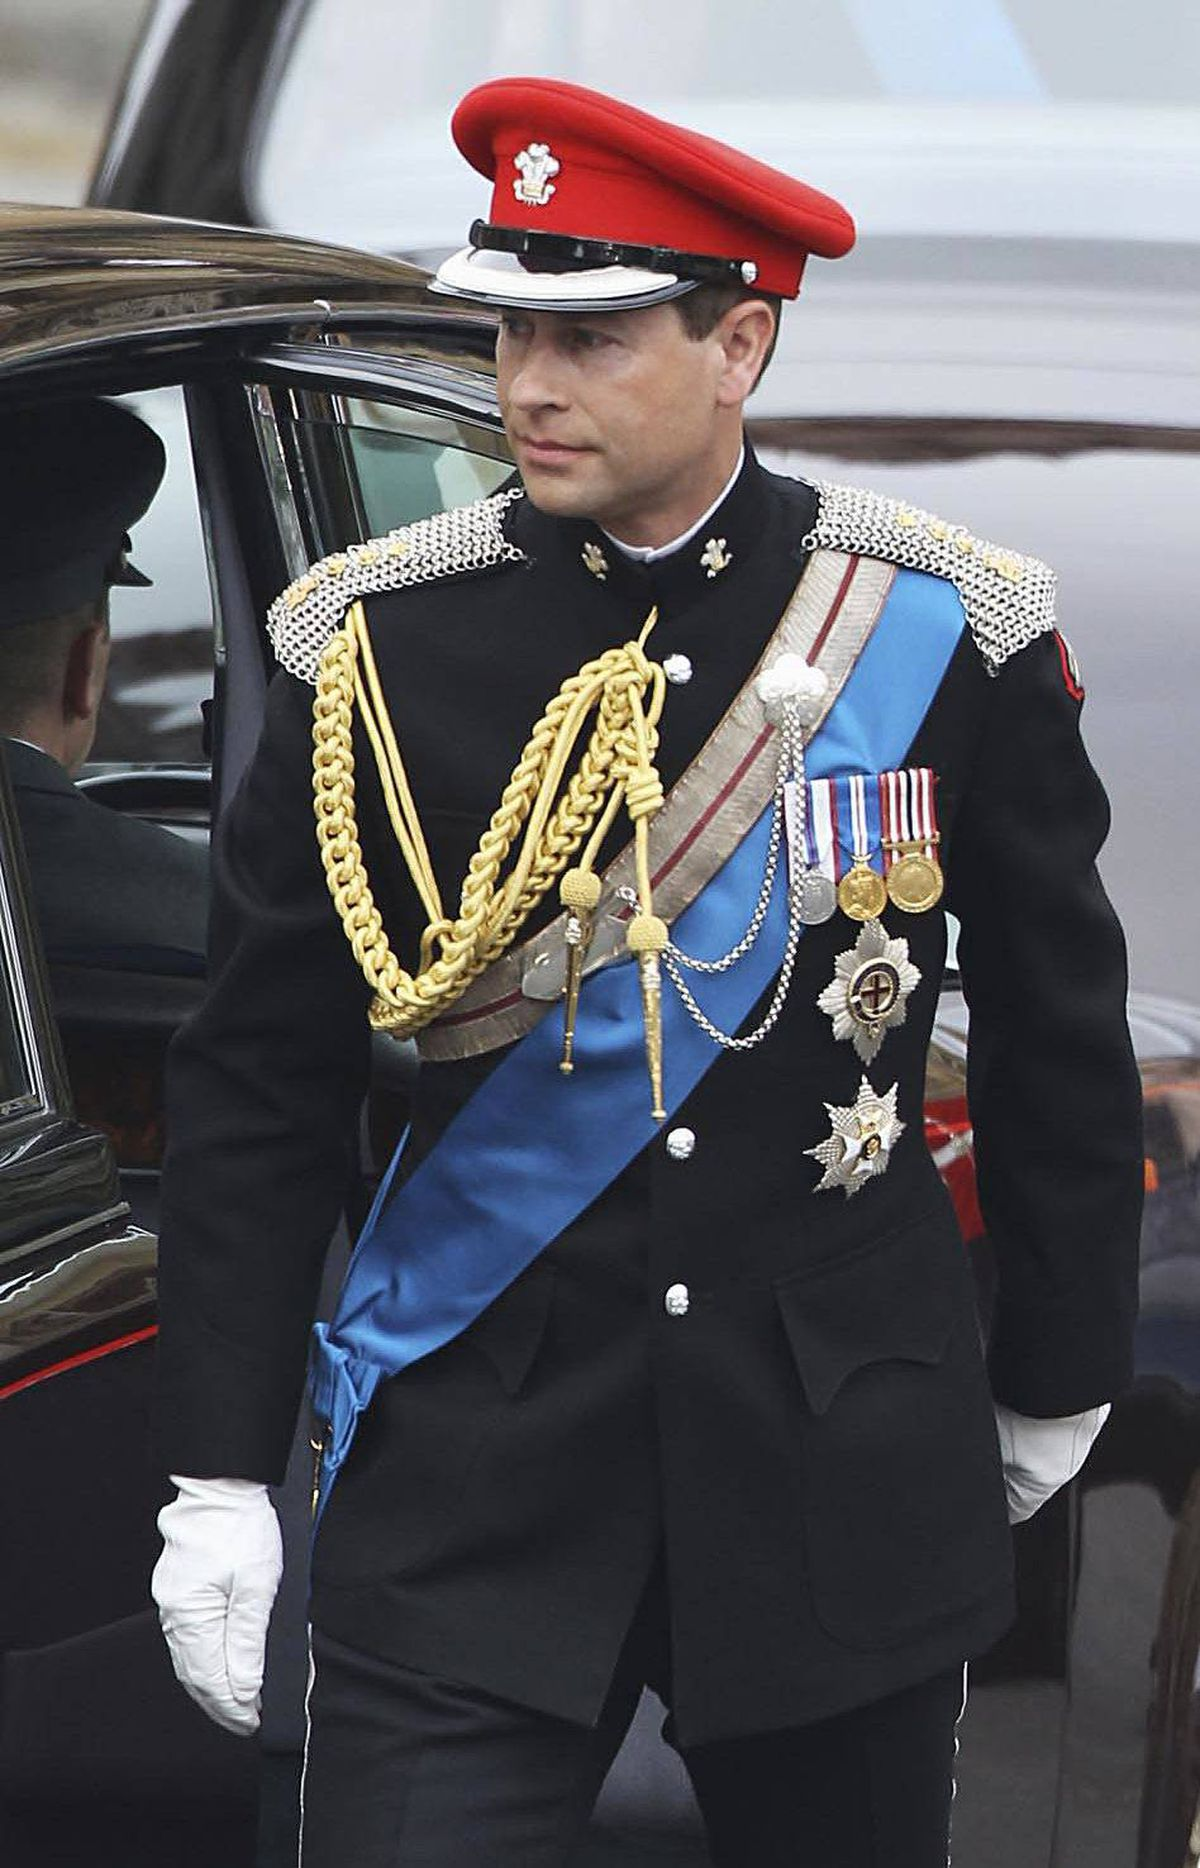 Prince Edward, Earl of Wessex arrives to attend the Royal Wedding of Prince William to Catherine Middleton at Westminster Abbey on April 29, 2011 in London, England.